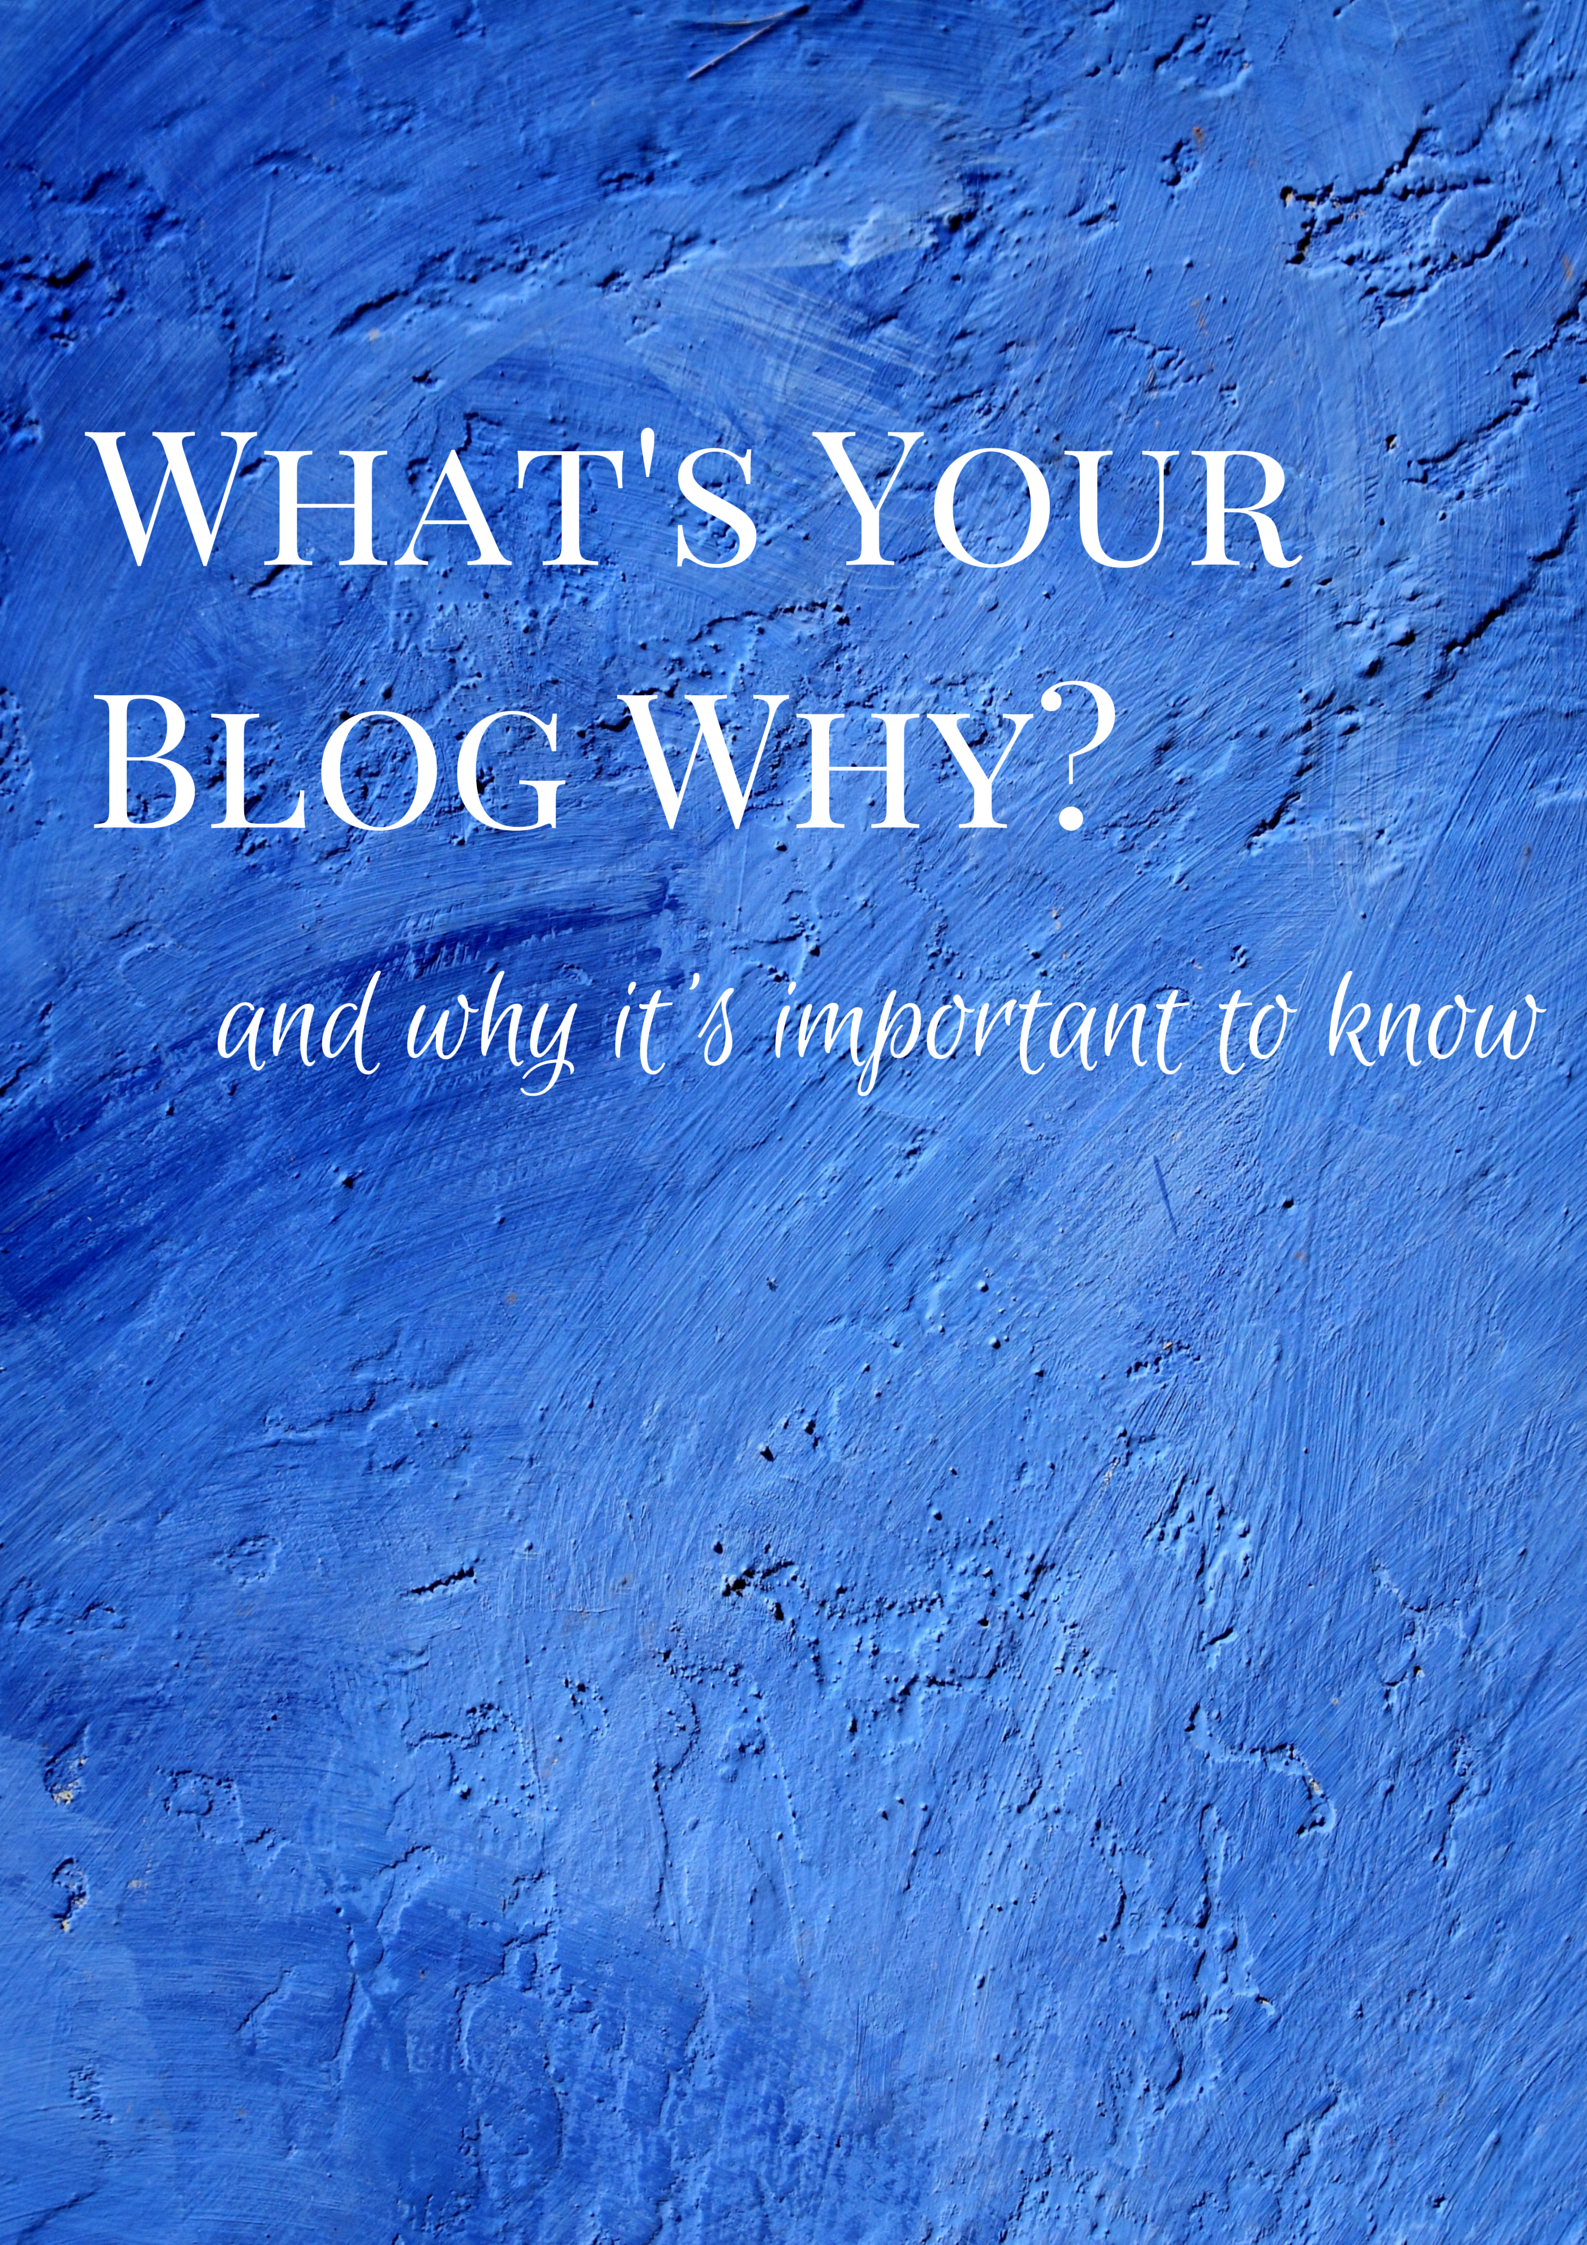 What's your blog why and why is it important to know